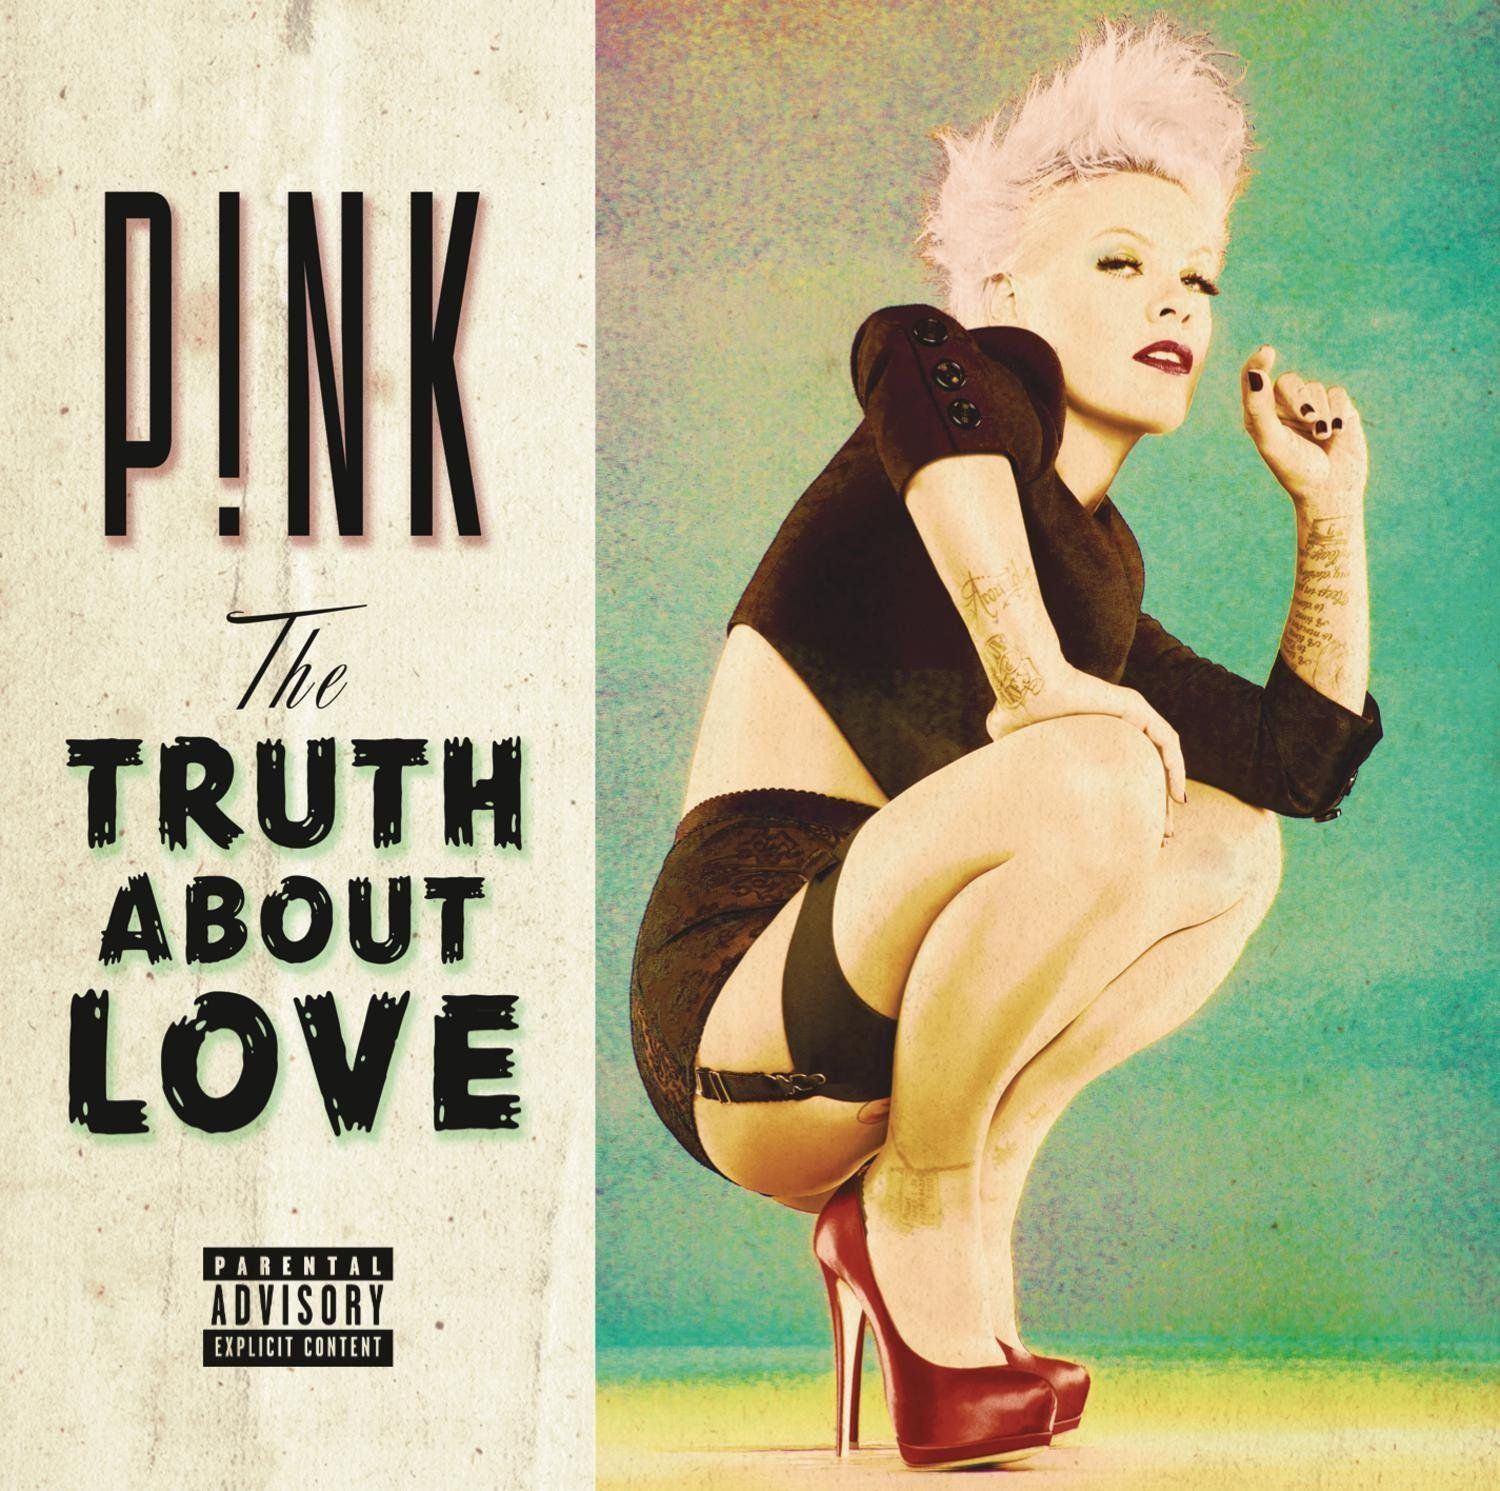 P!nk - The Truth About Love album cover